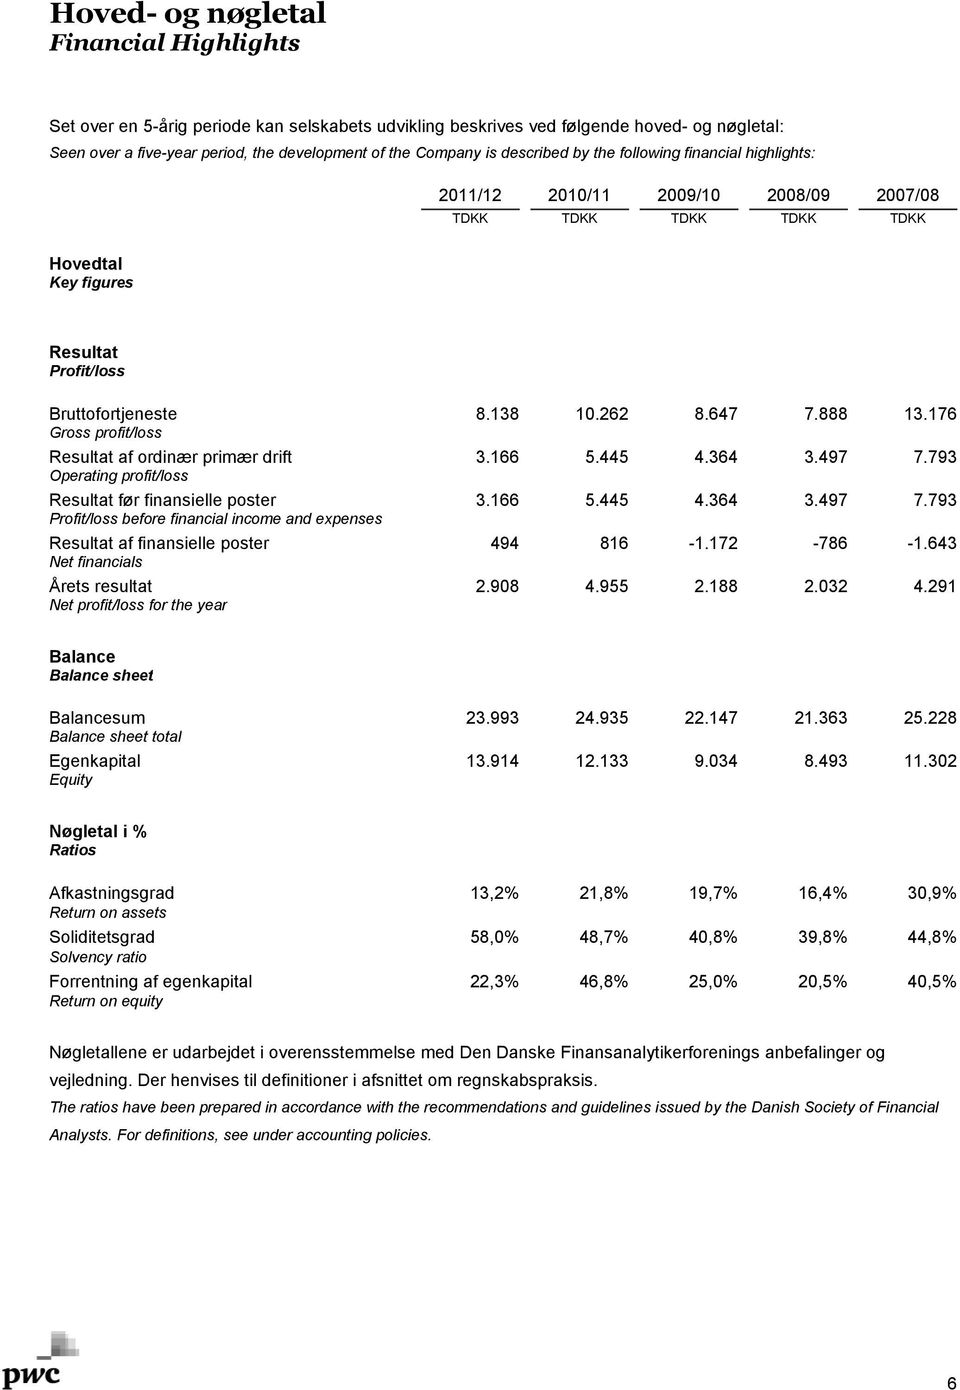 176 Gross profit/loss Resultat af ordinær primær drift 3.166 5.445 4.364 3.497 7.793 Operating profit/loss Resultat før finansielle poster 3.166 5.445 4.364 3.497 7.793 Profit/loss before financial income and expenses Resultat af finansielle poster 494 816-1.